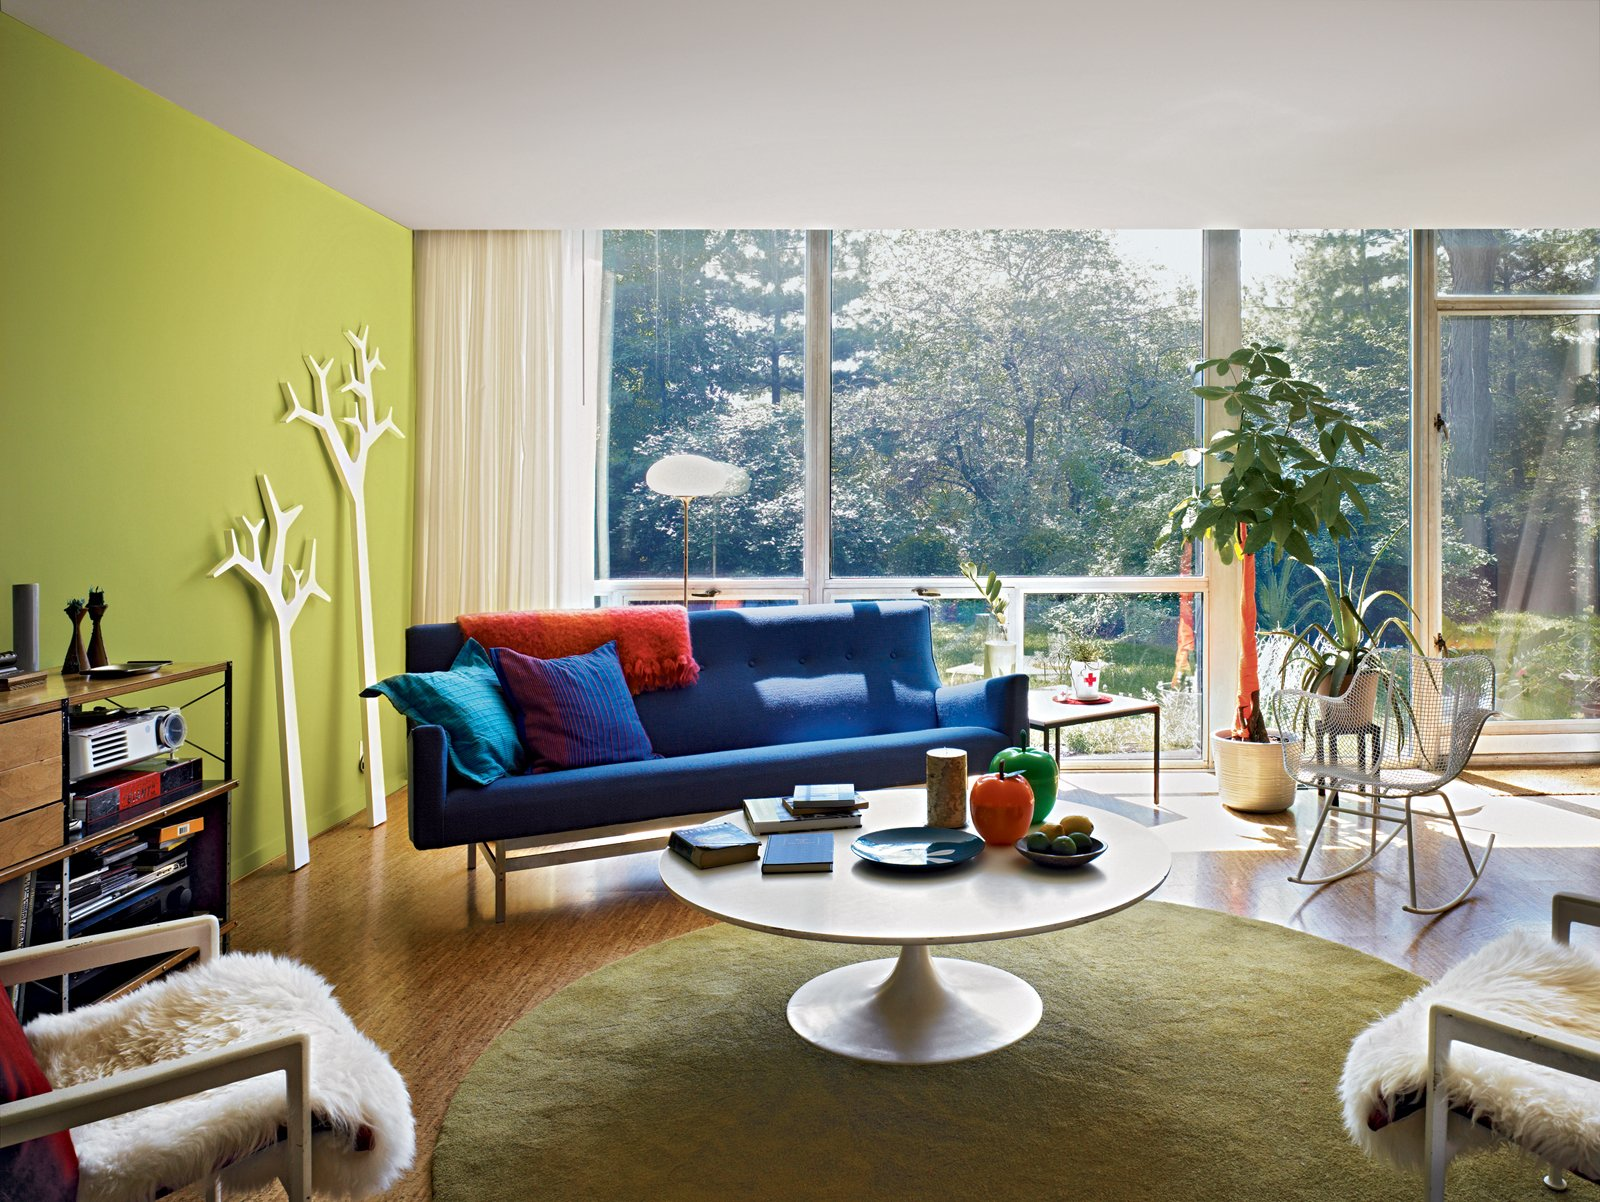 #interior #design #interiordesign #modern #livingroom #color #designwithcolor #rockingchair #green #blue #sofa #rug #orange #red #plants #stereo #treecoathangers #michaelyoung #katrinpetursdottir #foliage #outside #exterior #furchair #vintage #furniture  36+ Interior Color Pop Ideas For Modern Homes